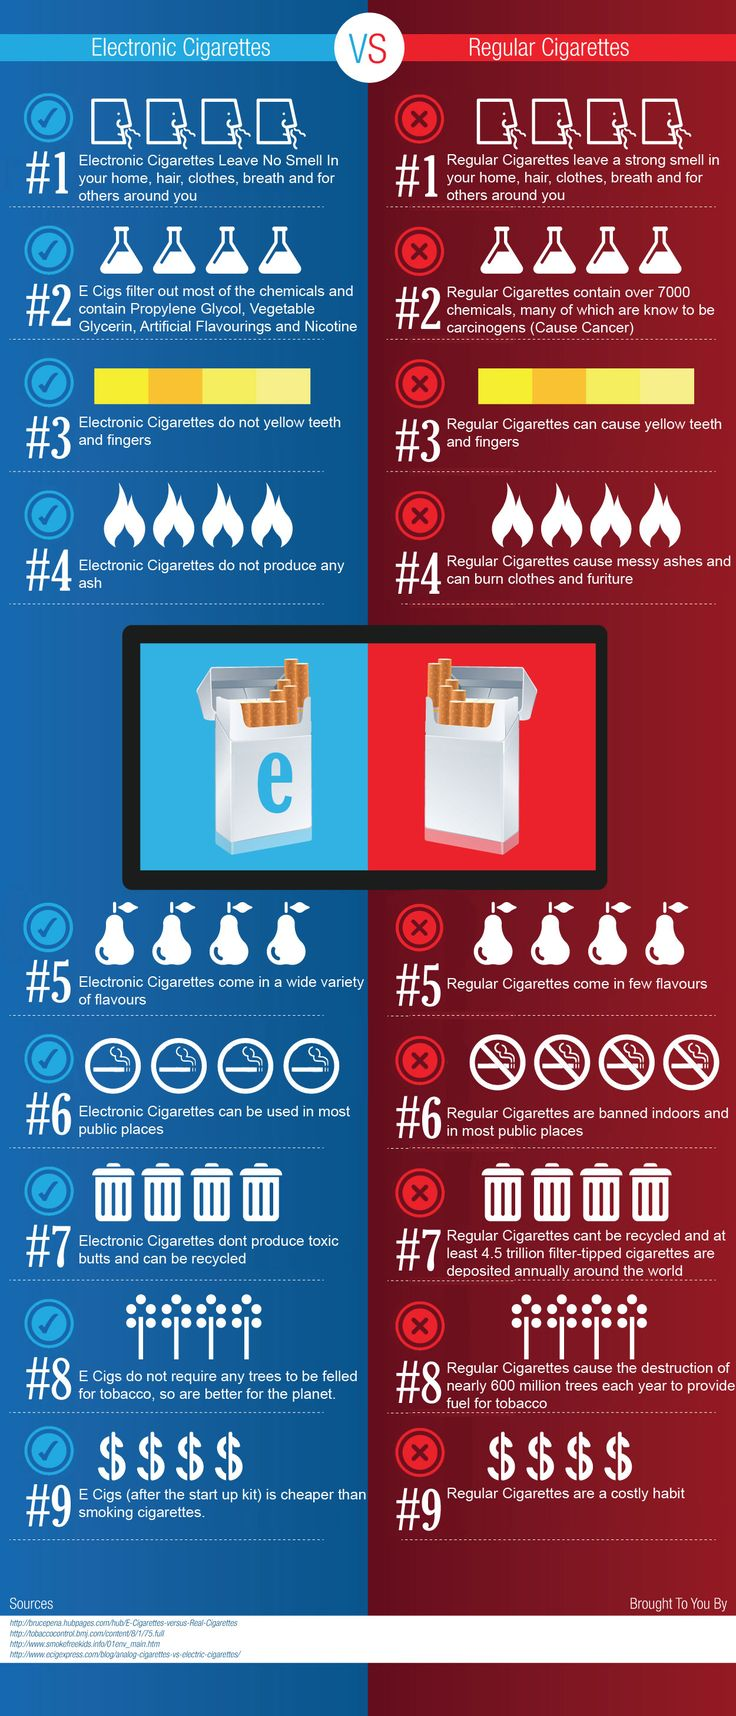 Electronic Cigarettes vs Regular Cigarettes